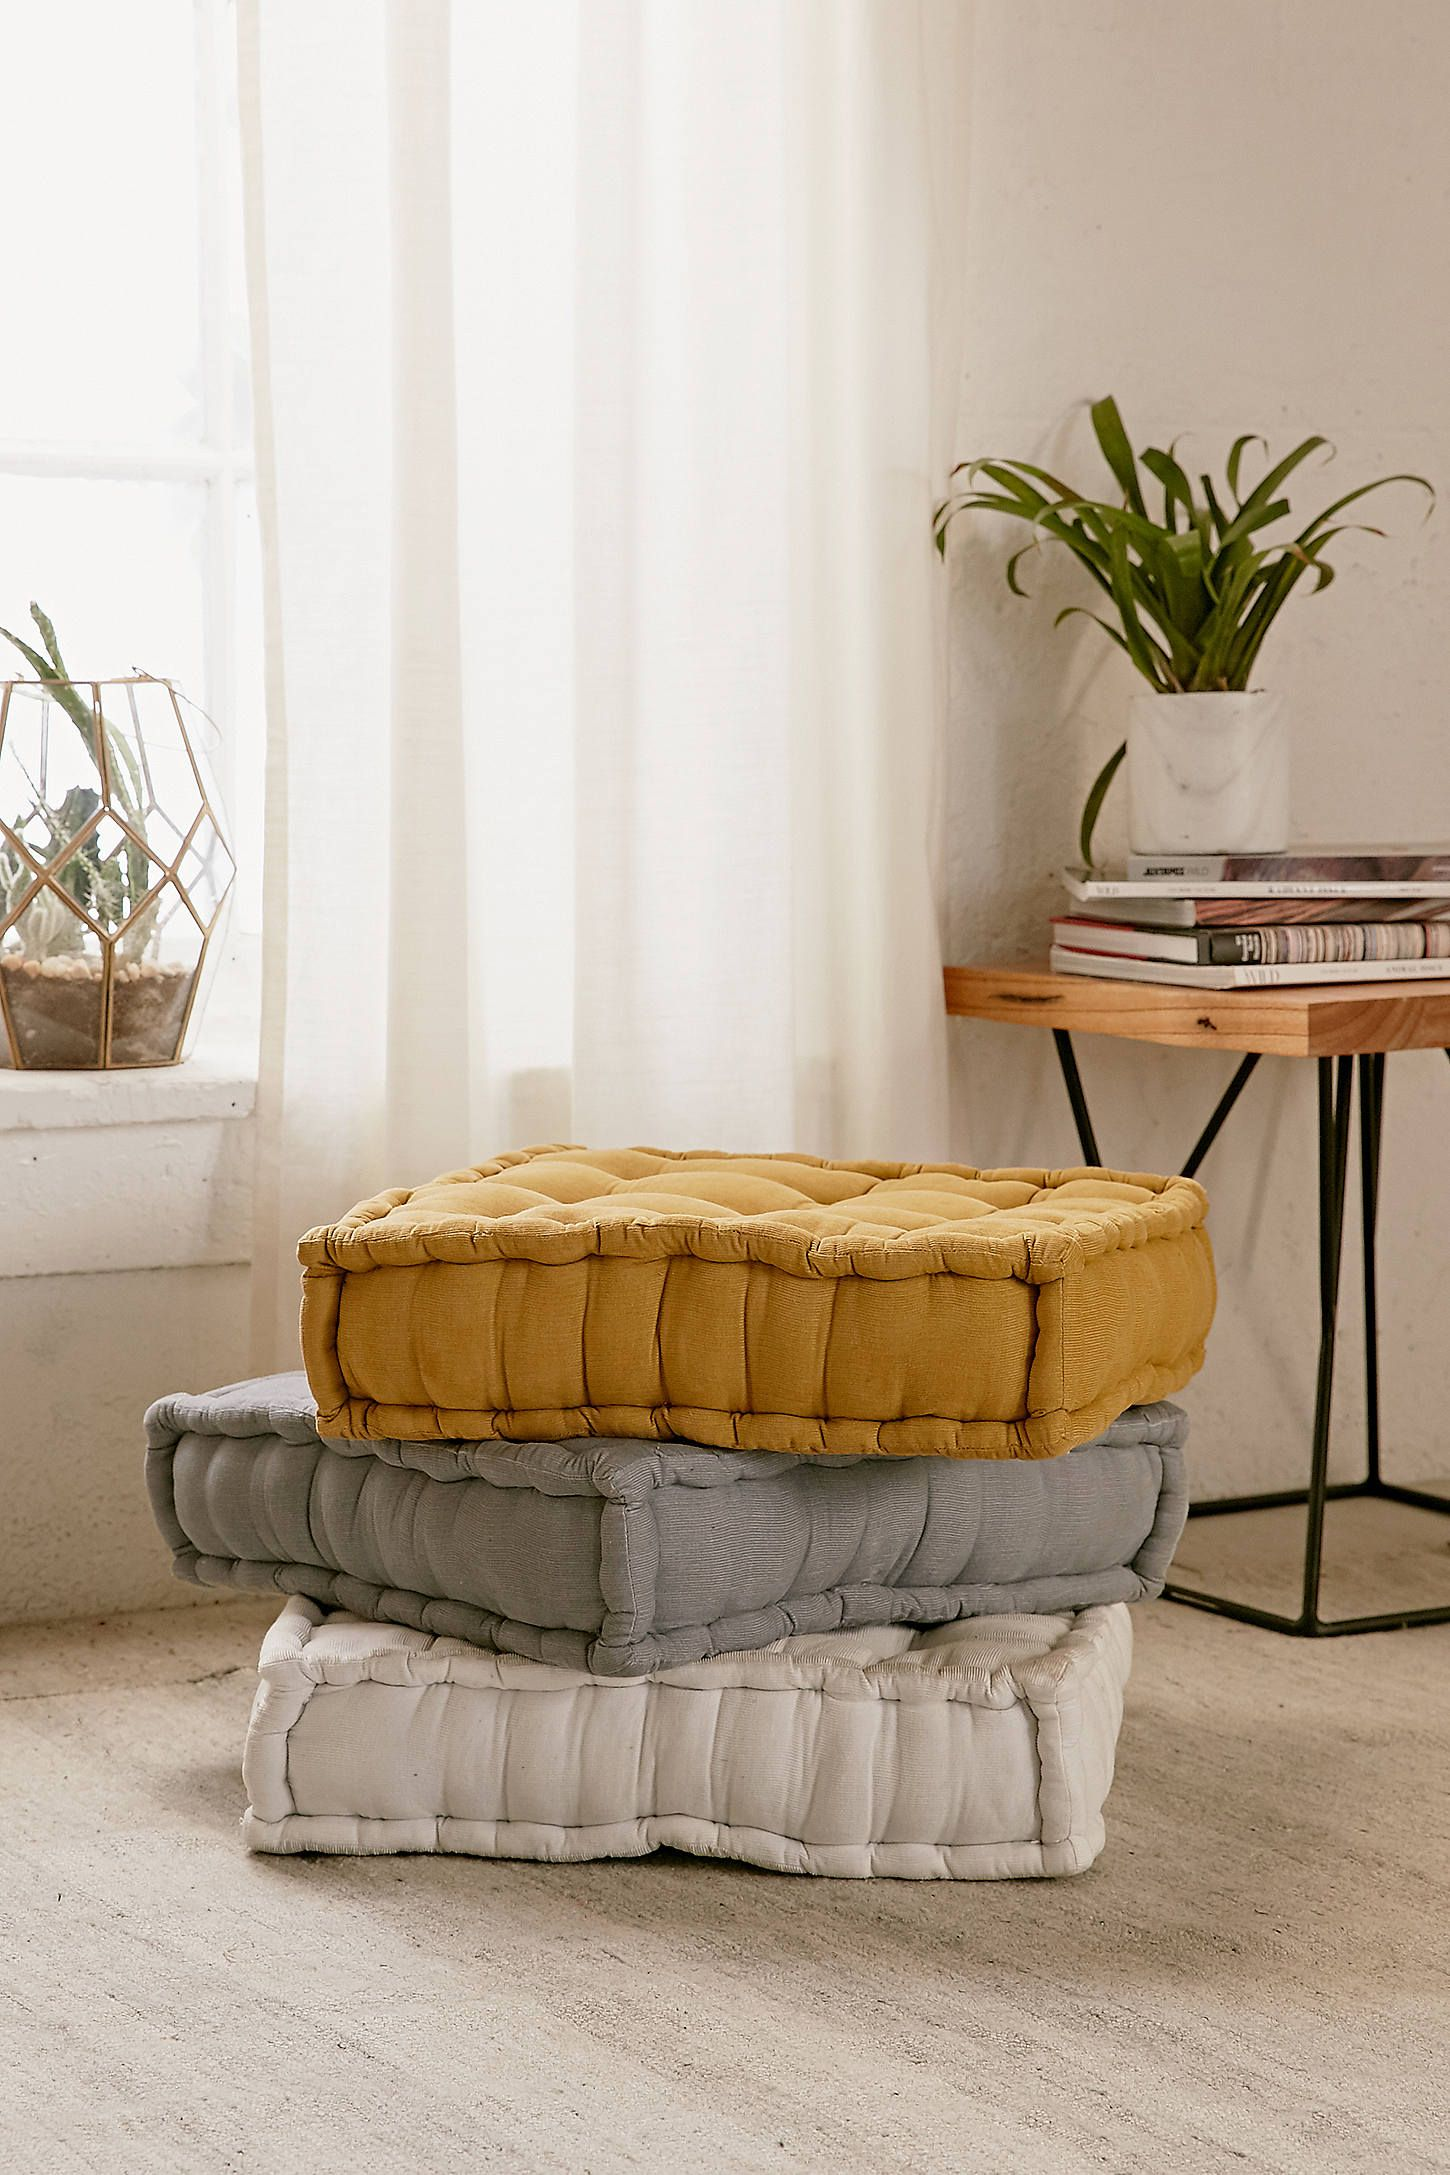 Tufted Corduroy Floor Pillow | Floor pillows, Pillows and Apartments